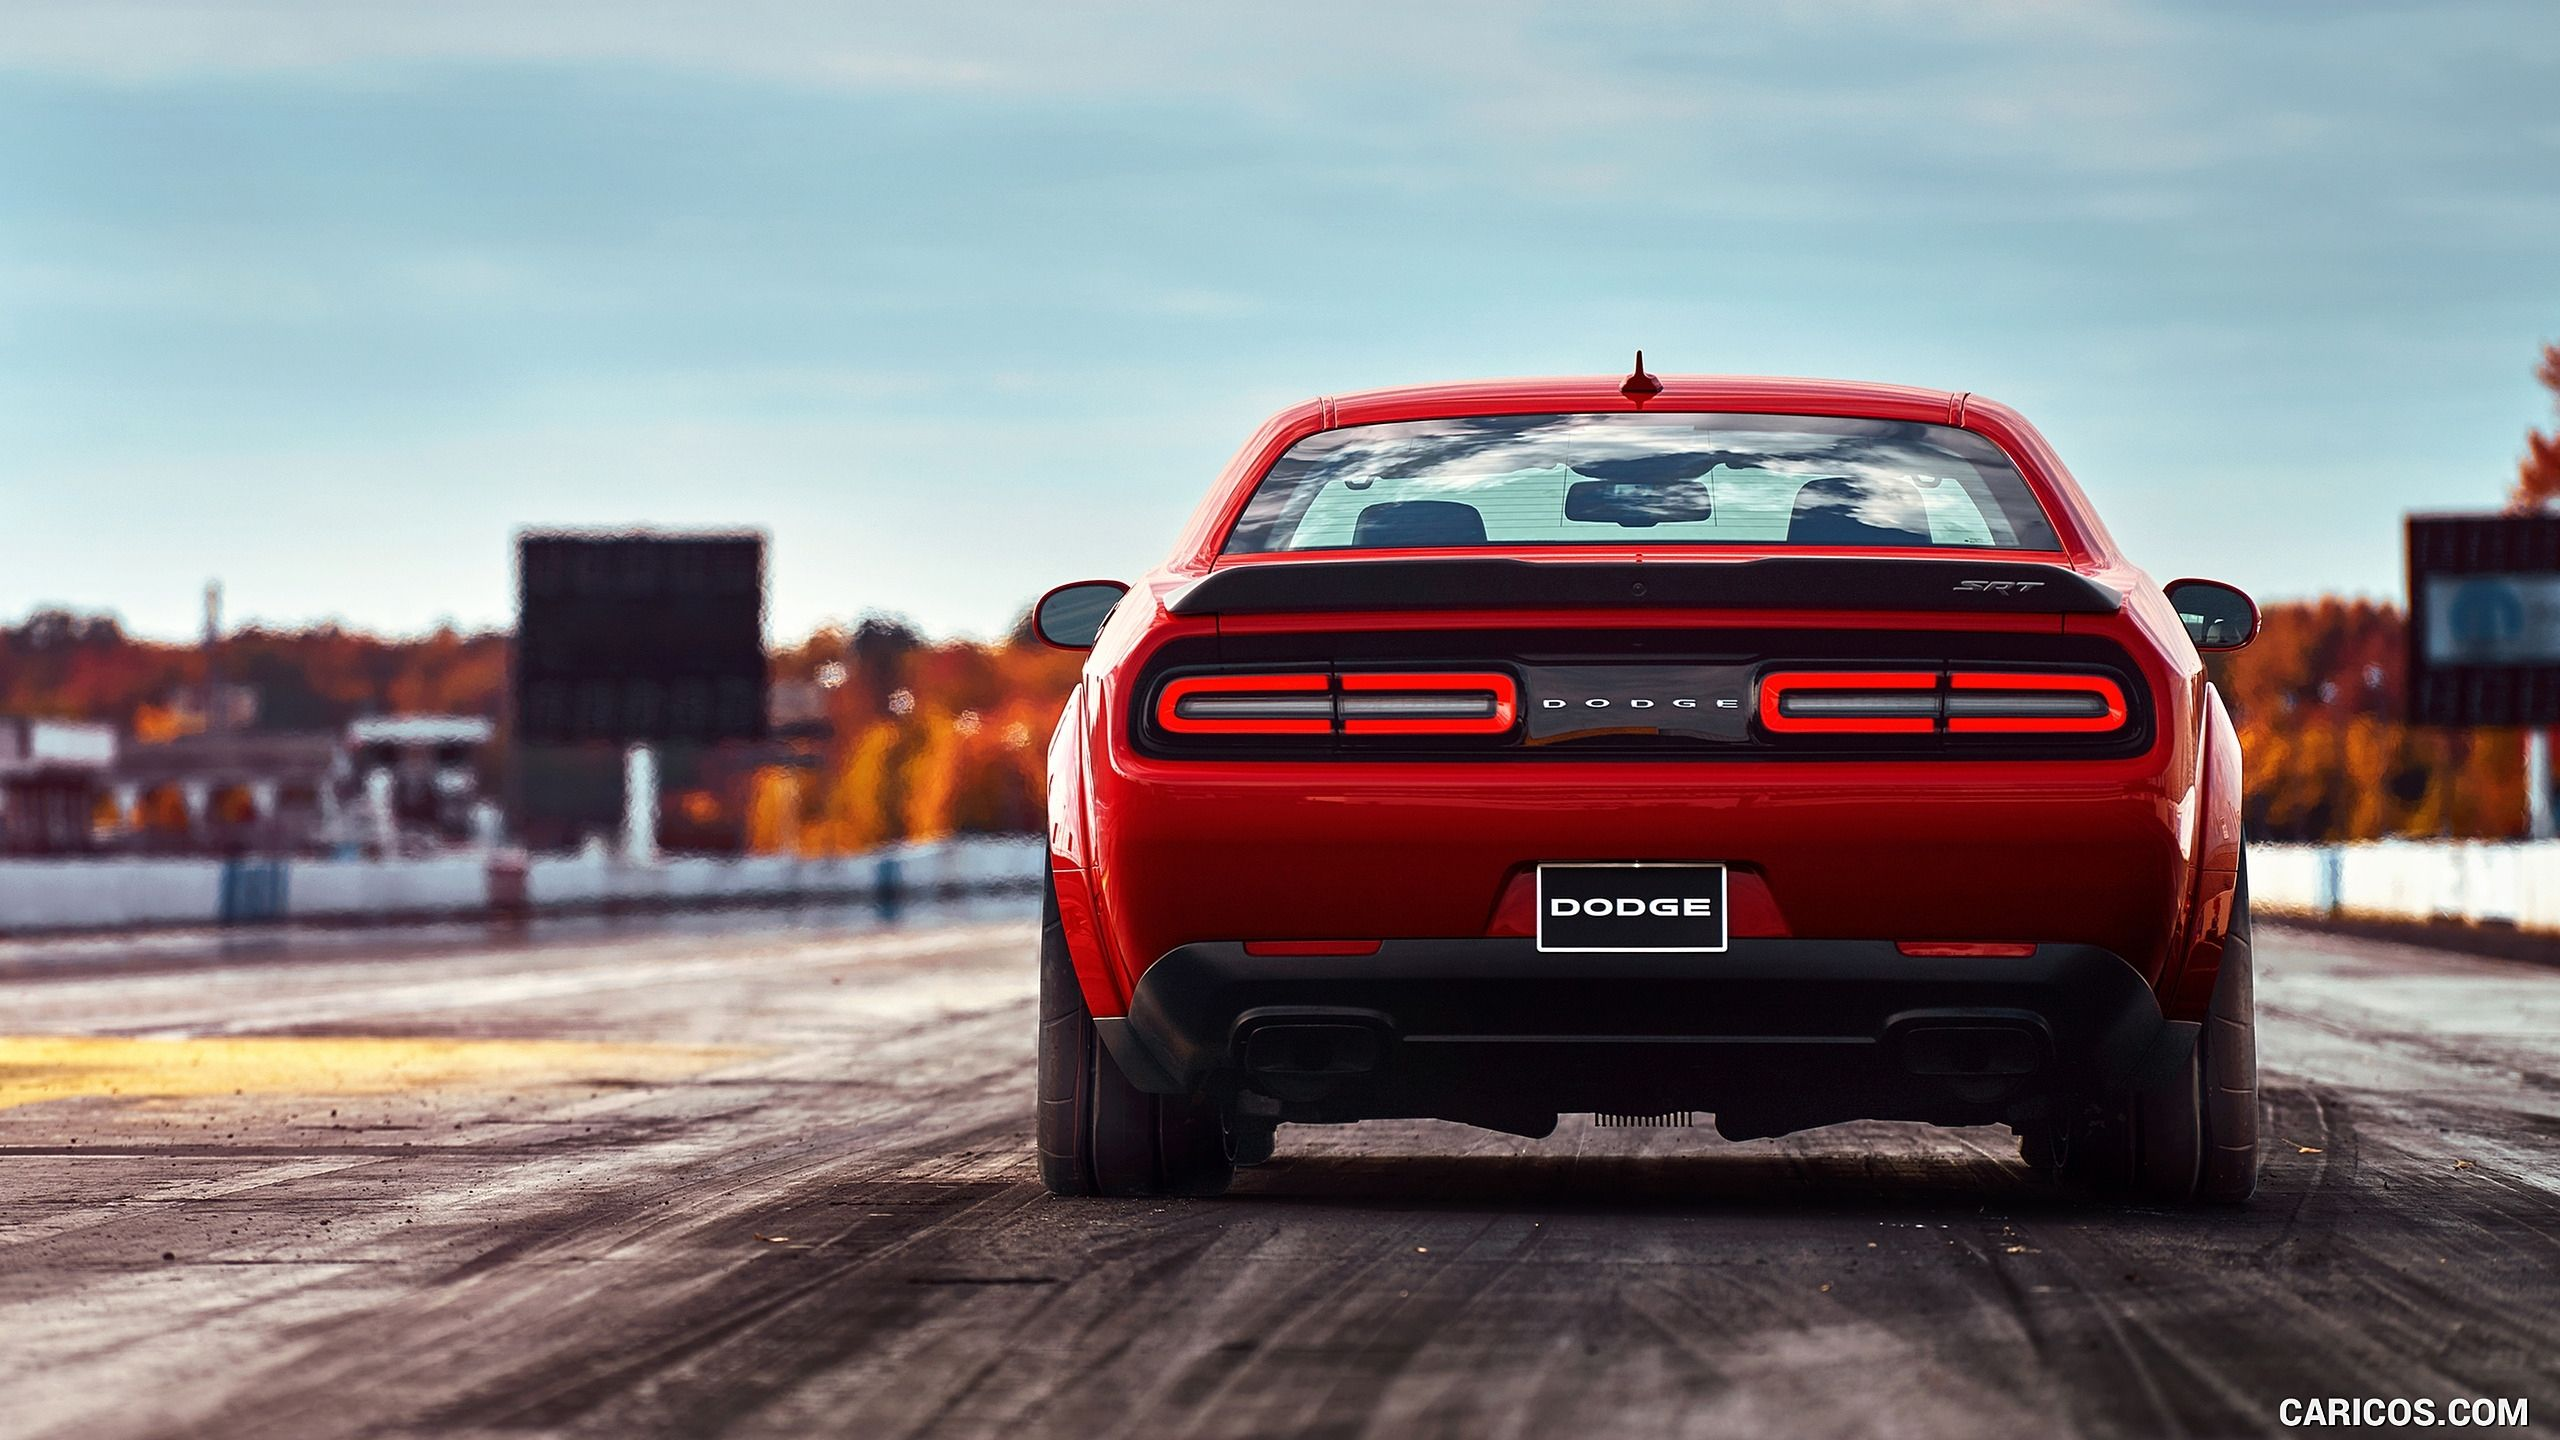 10 New Dodge Challenger Hd Wallpaper FULL HD 1080p For PC